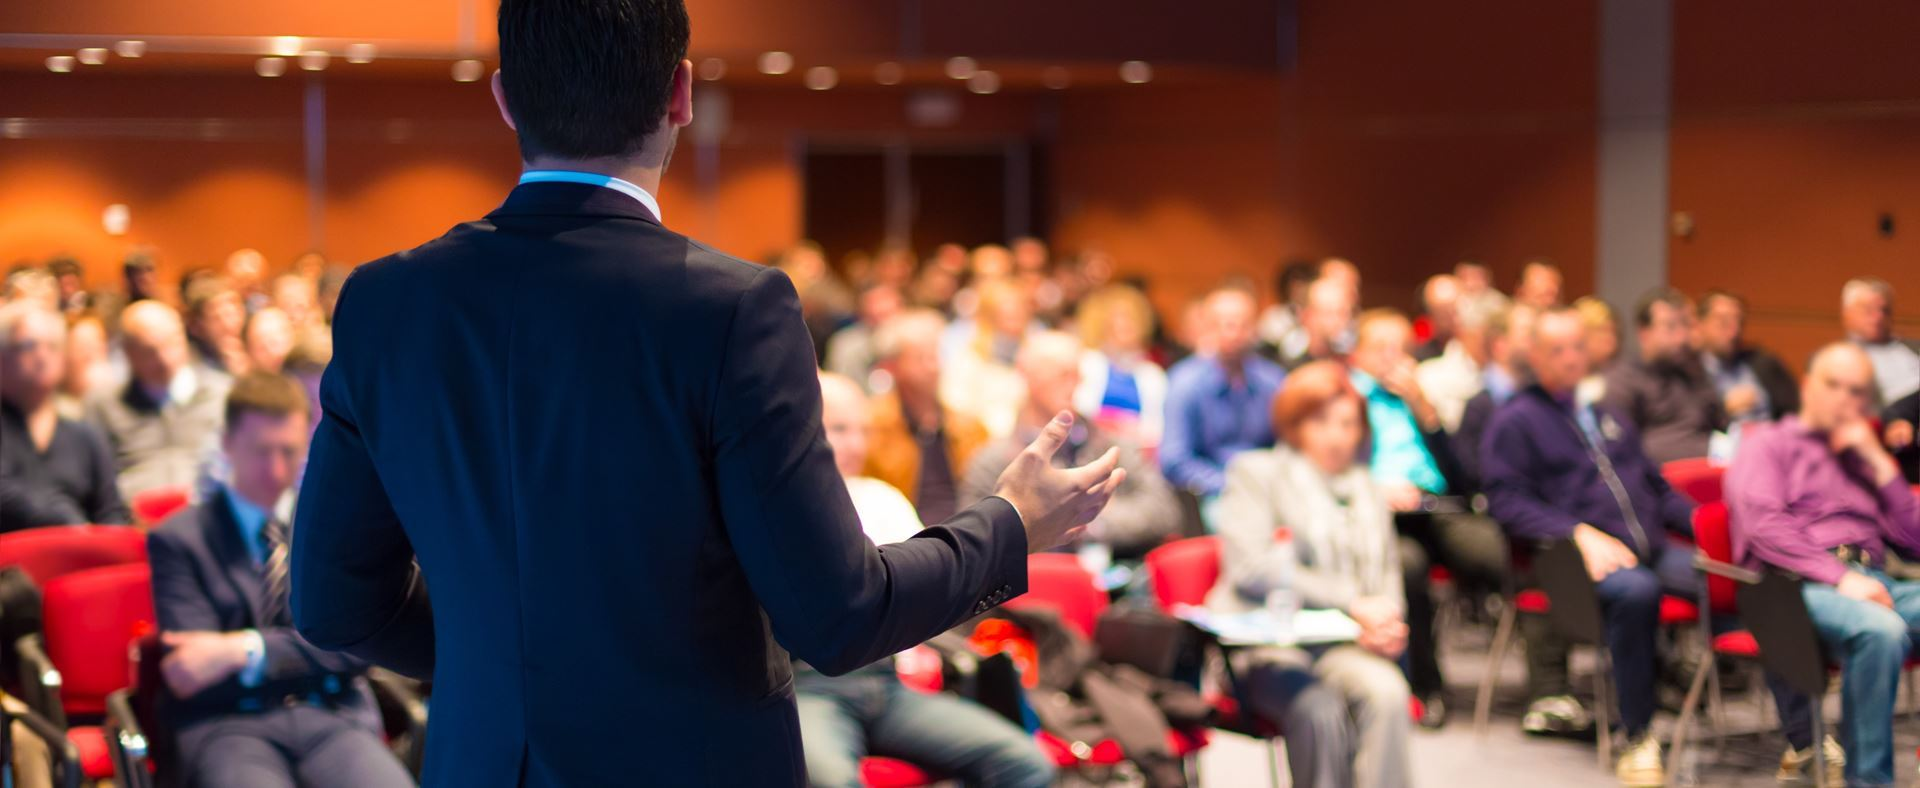 PR Tips To Ace Your Next Speaking Gig